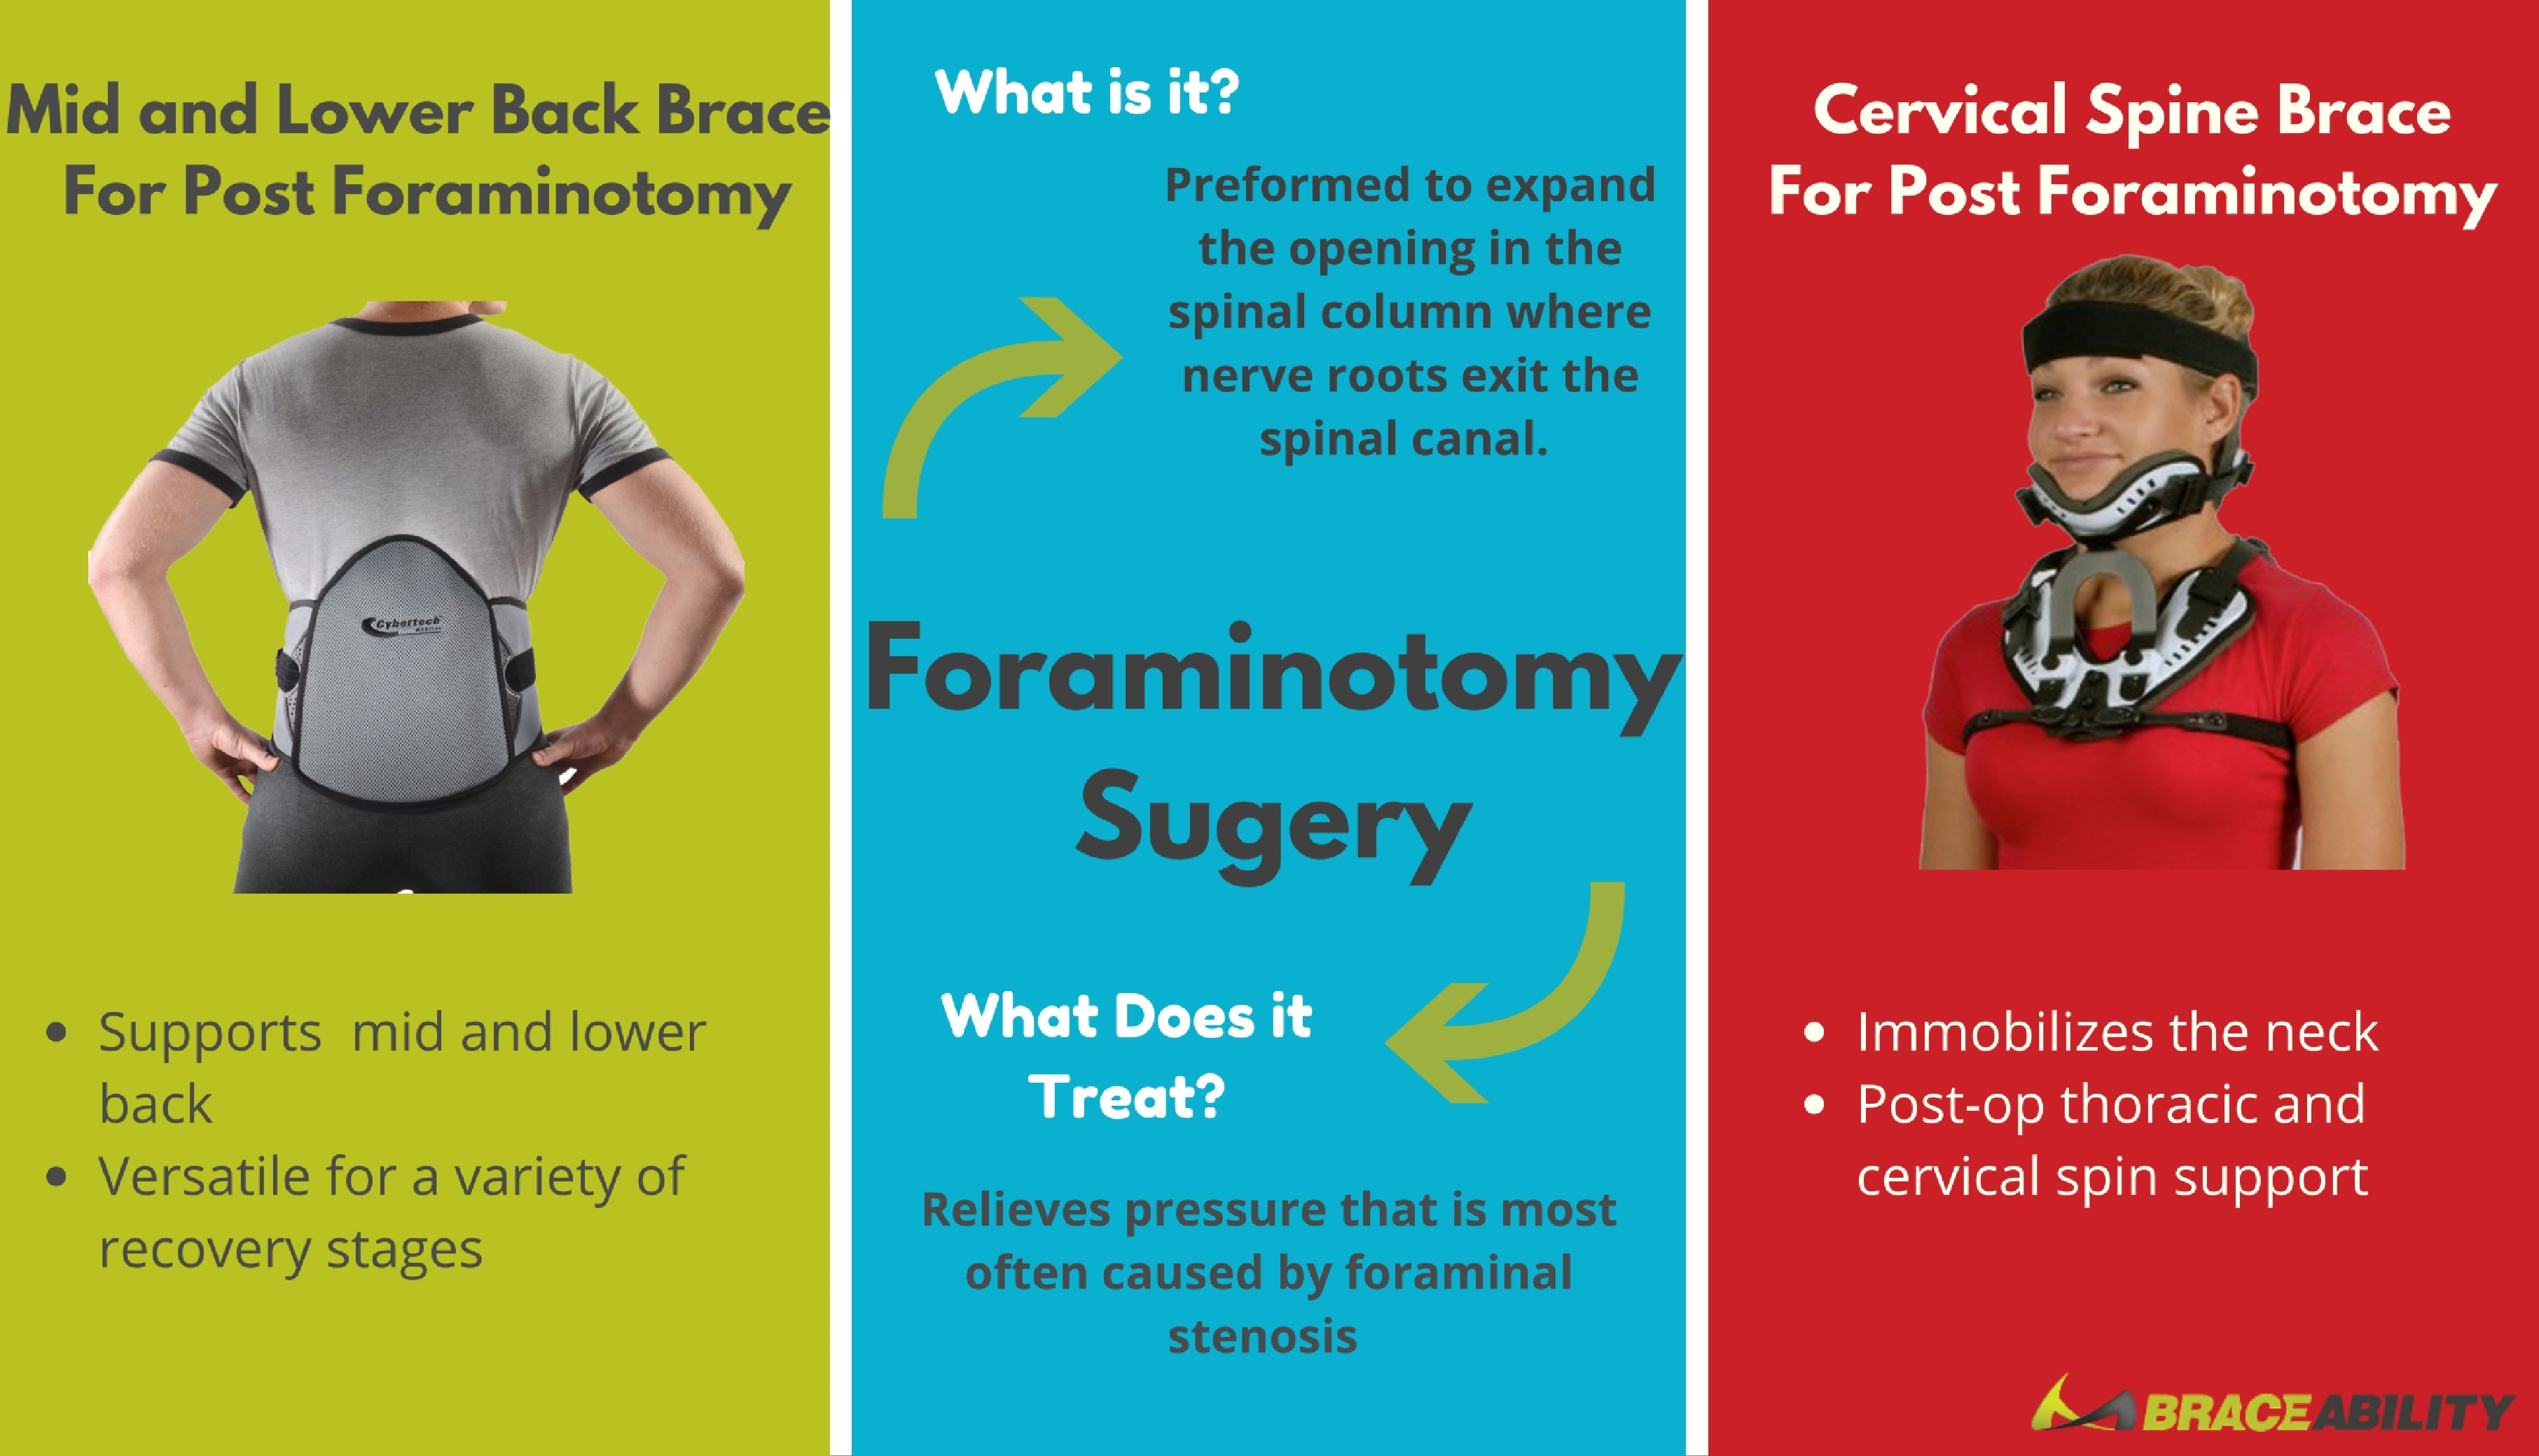 The best brace for post lumbar or cervical foraminotomy surgery